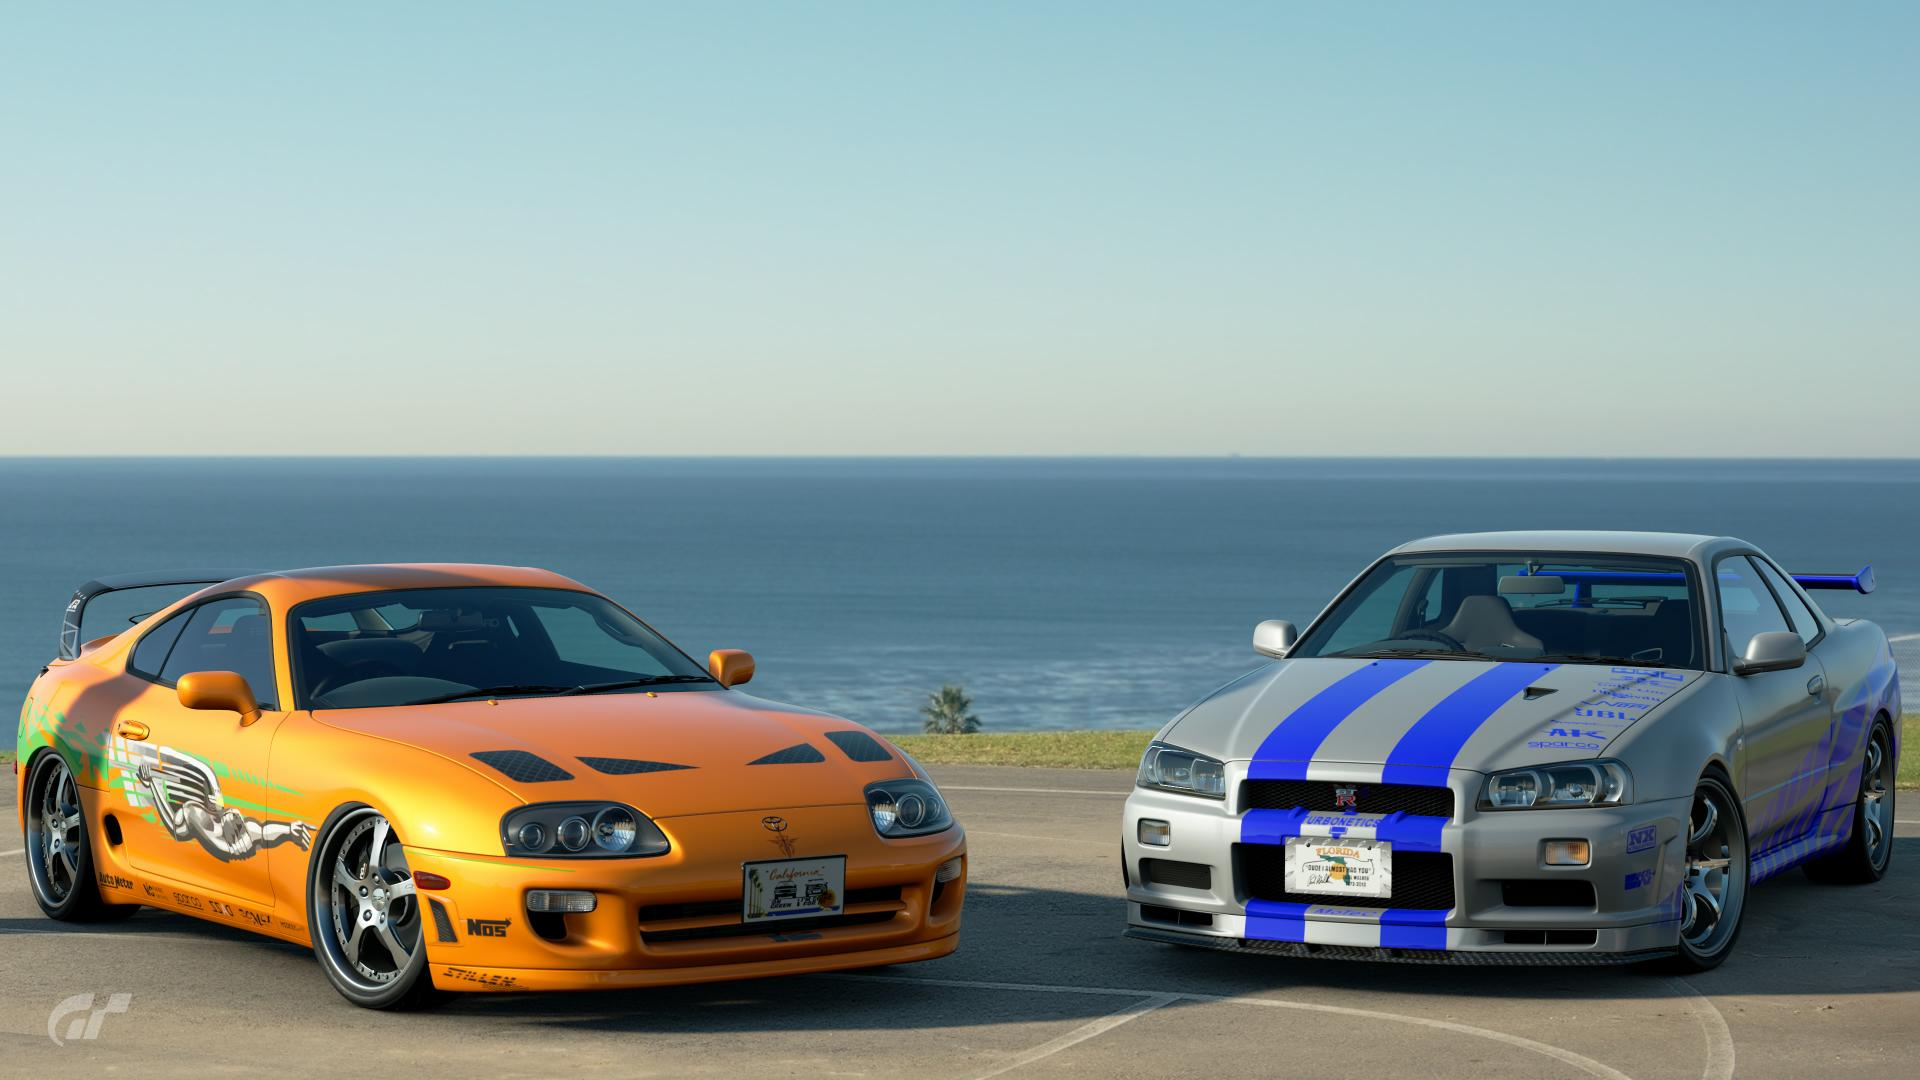 Toyota Supra Fast And Furious Scapes Photos By Tonysousou26